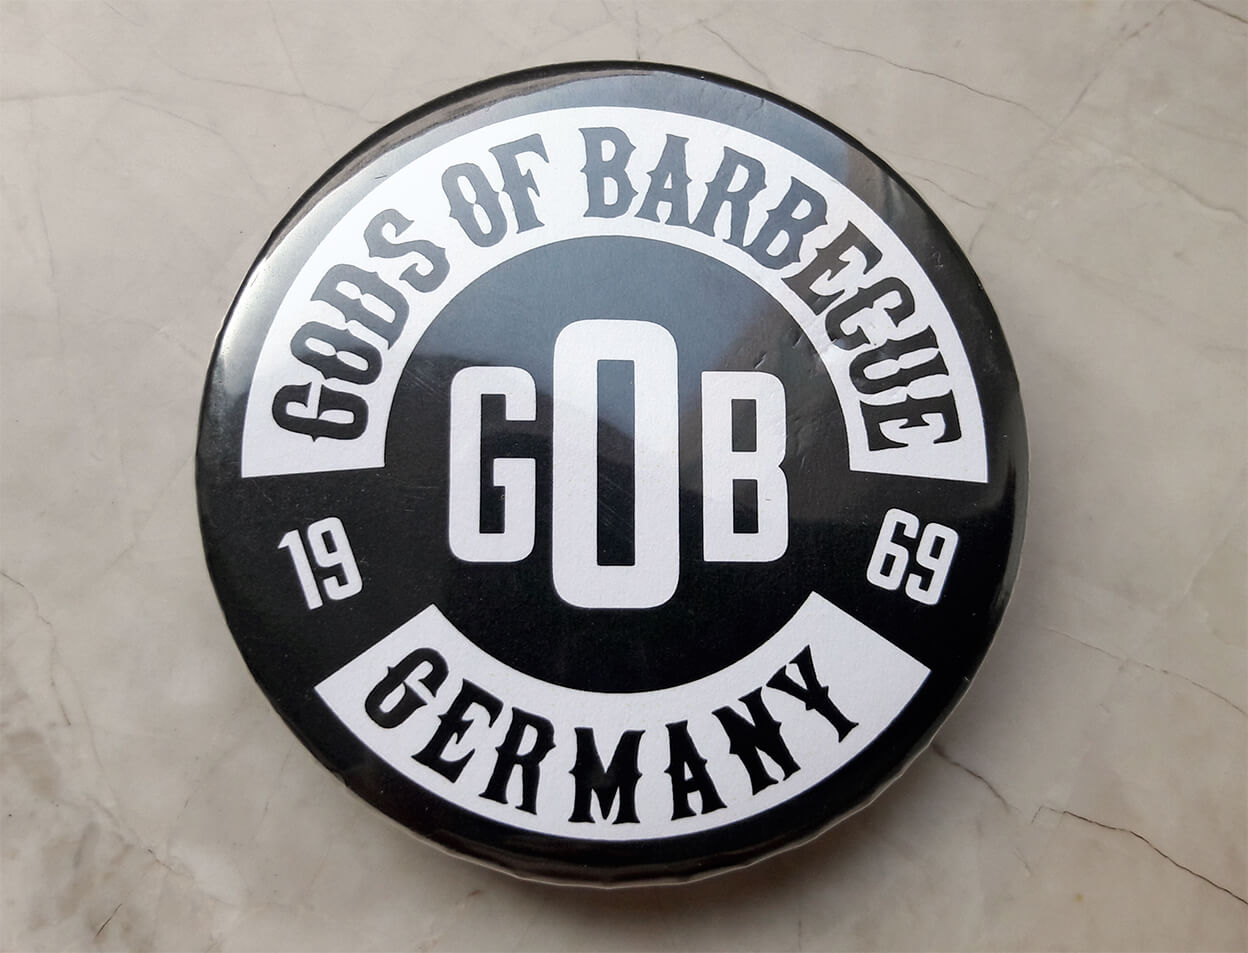 Gods of Barbecue